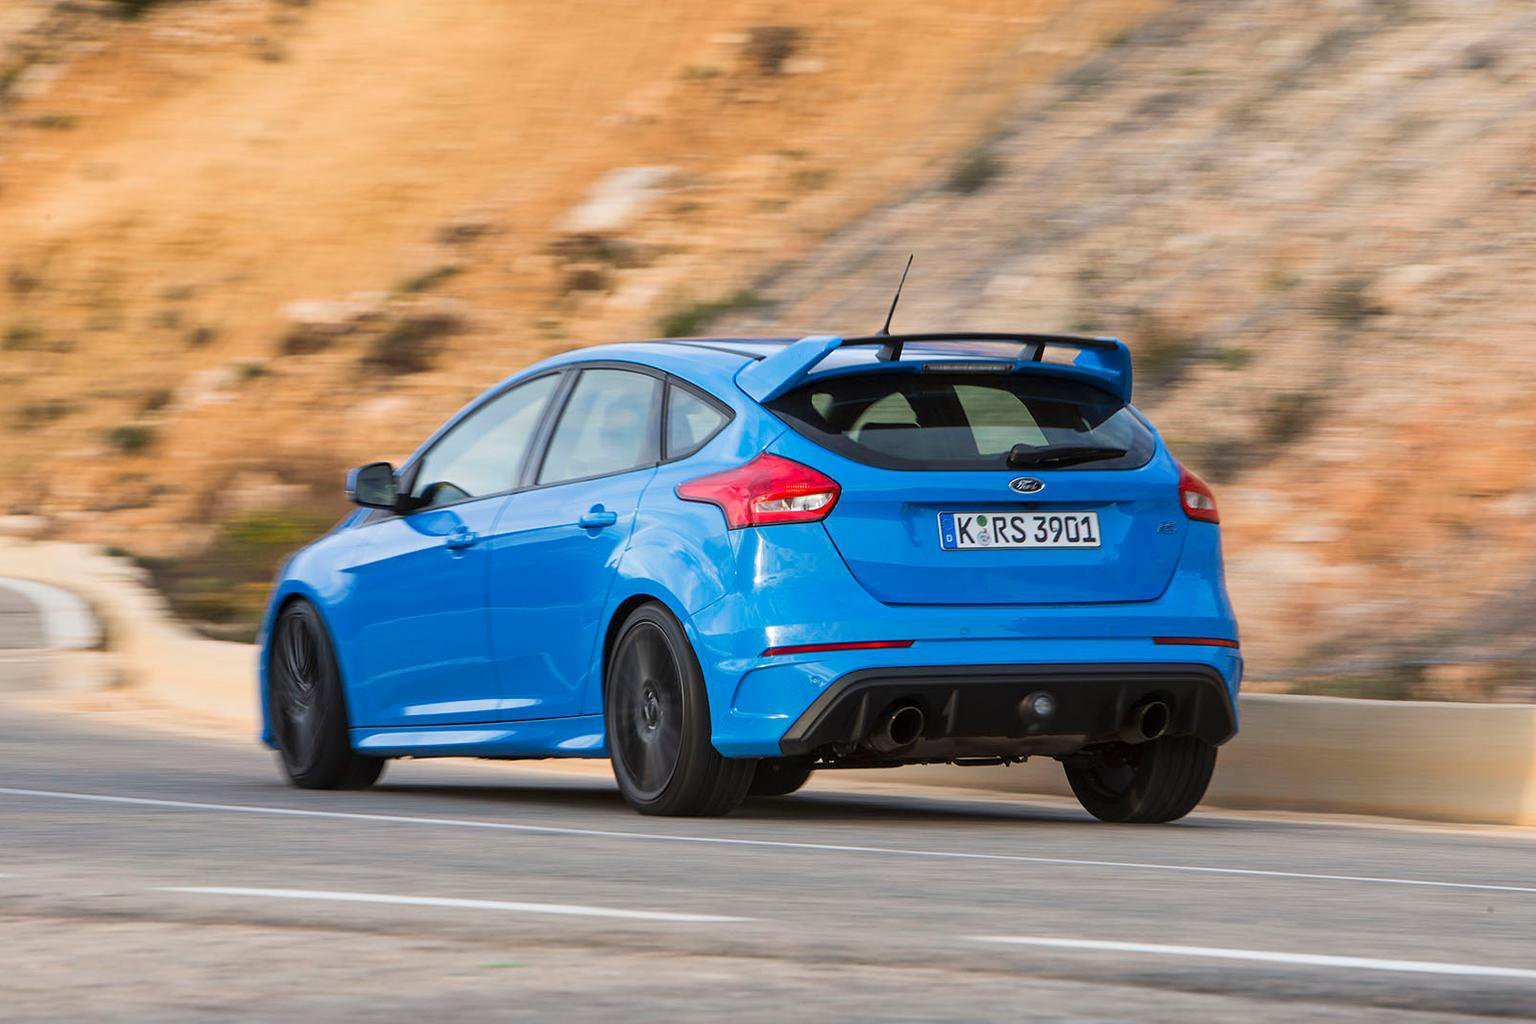 10 reasons to buy a Ford Focus RS